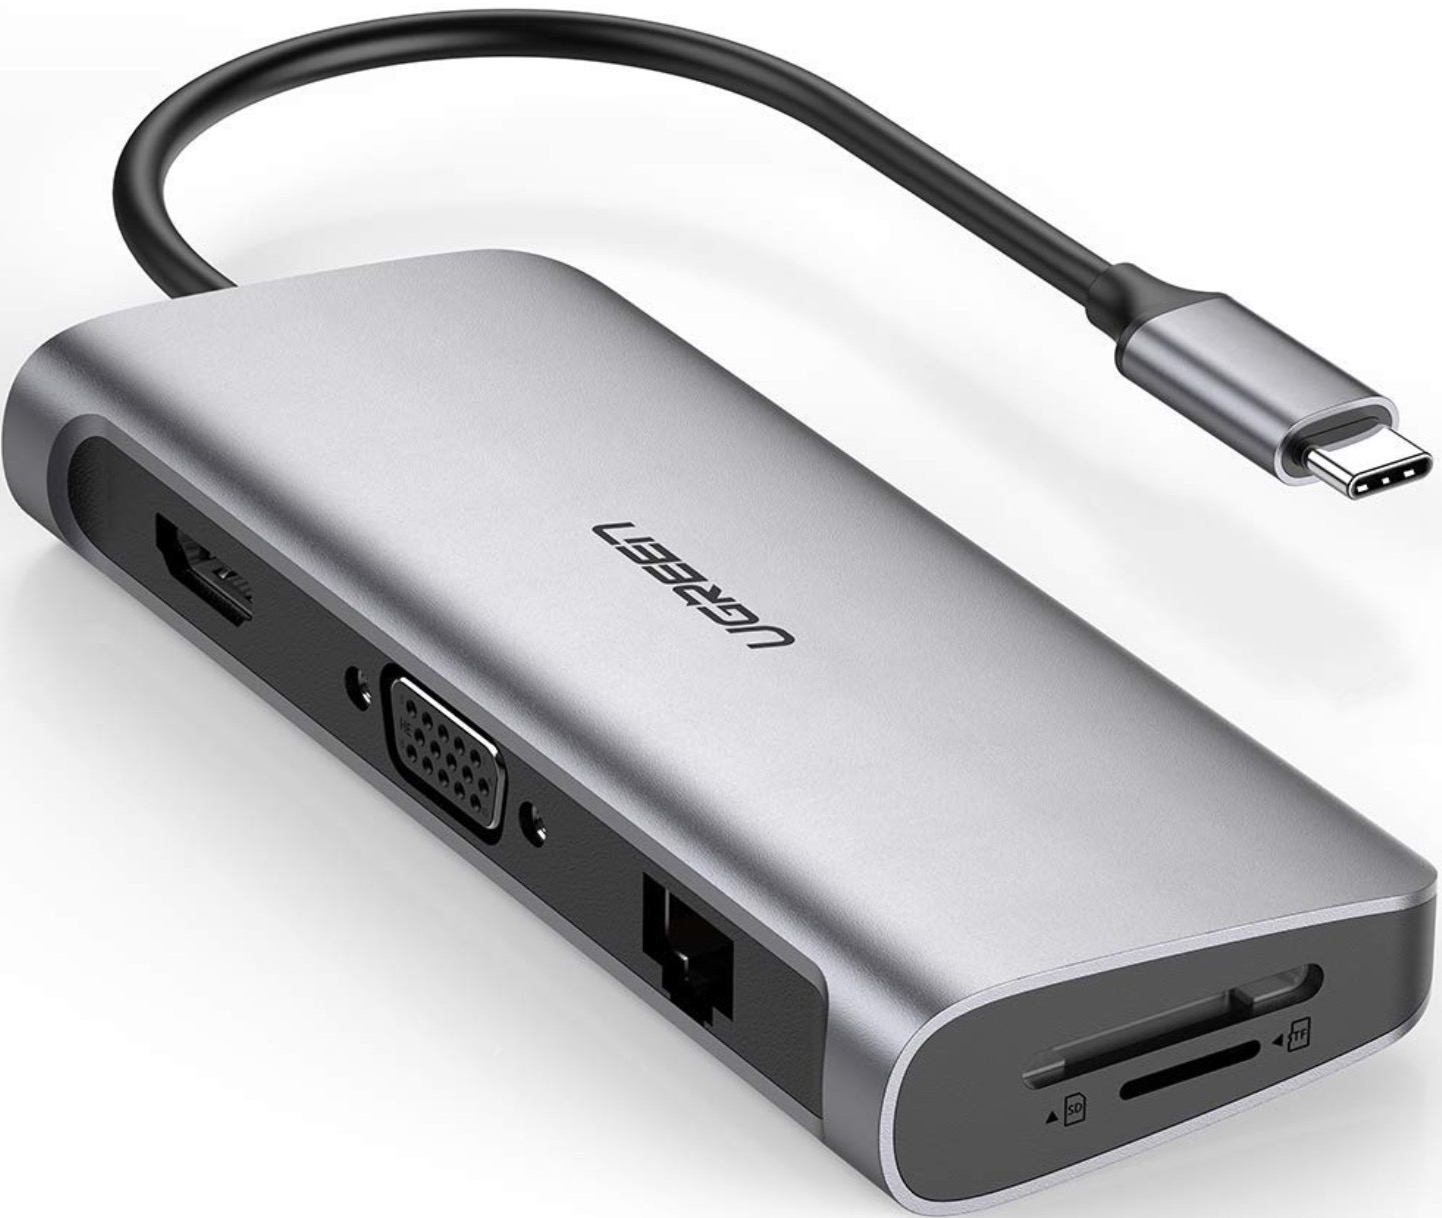 Best USB-C Hubs for the MacBook Pro in 2019 | TechnoBuffalo